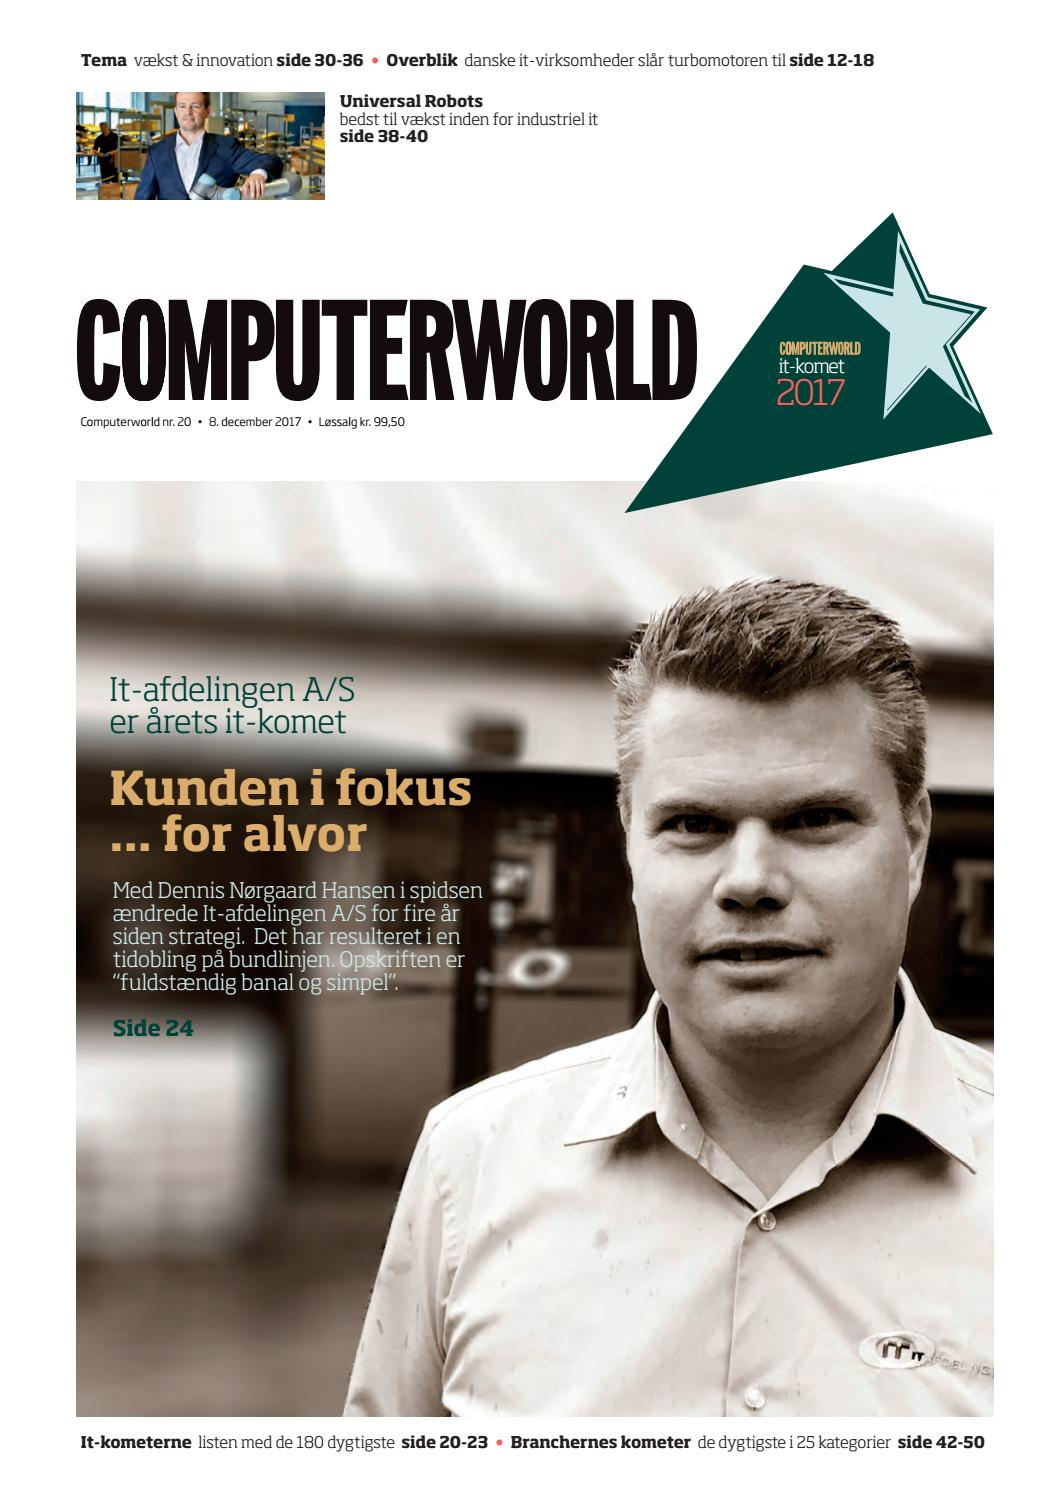 9d97612f6f22 Computerworld it komet 2017 by Computerworld A S - issuu